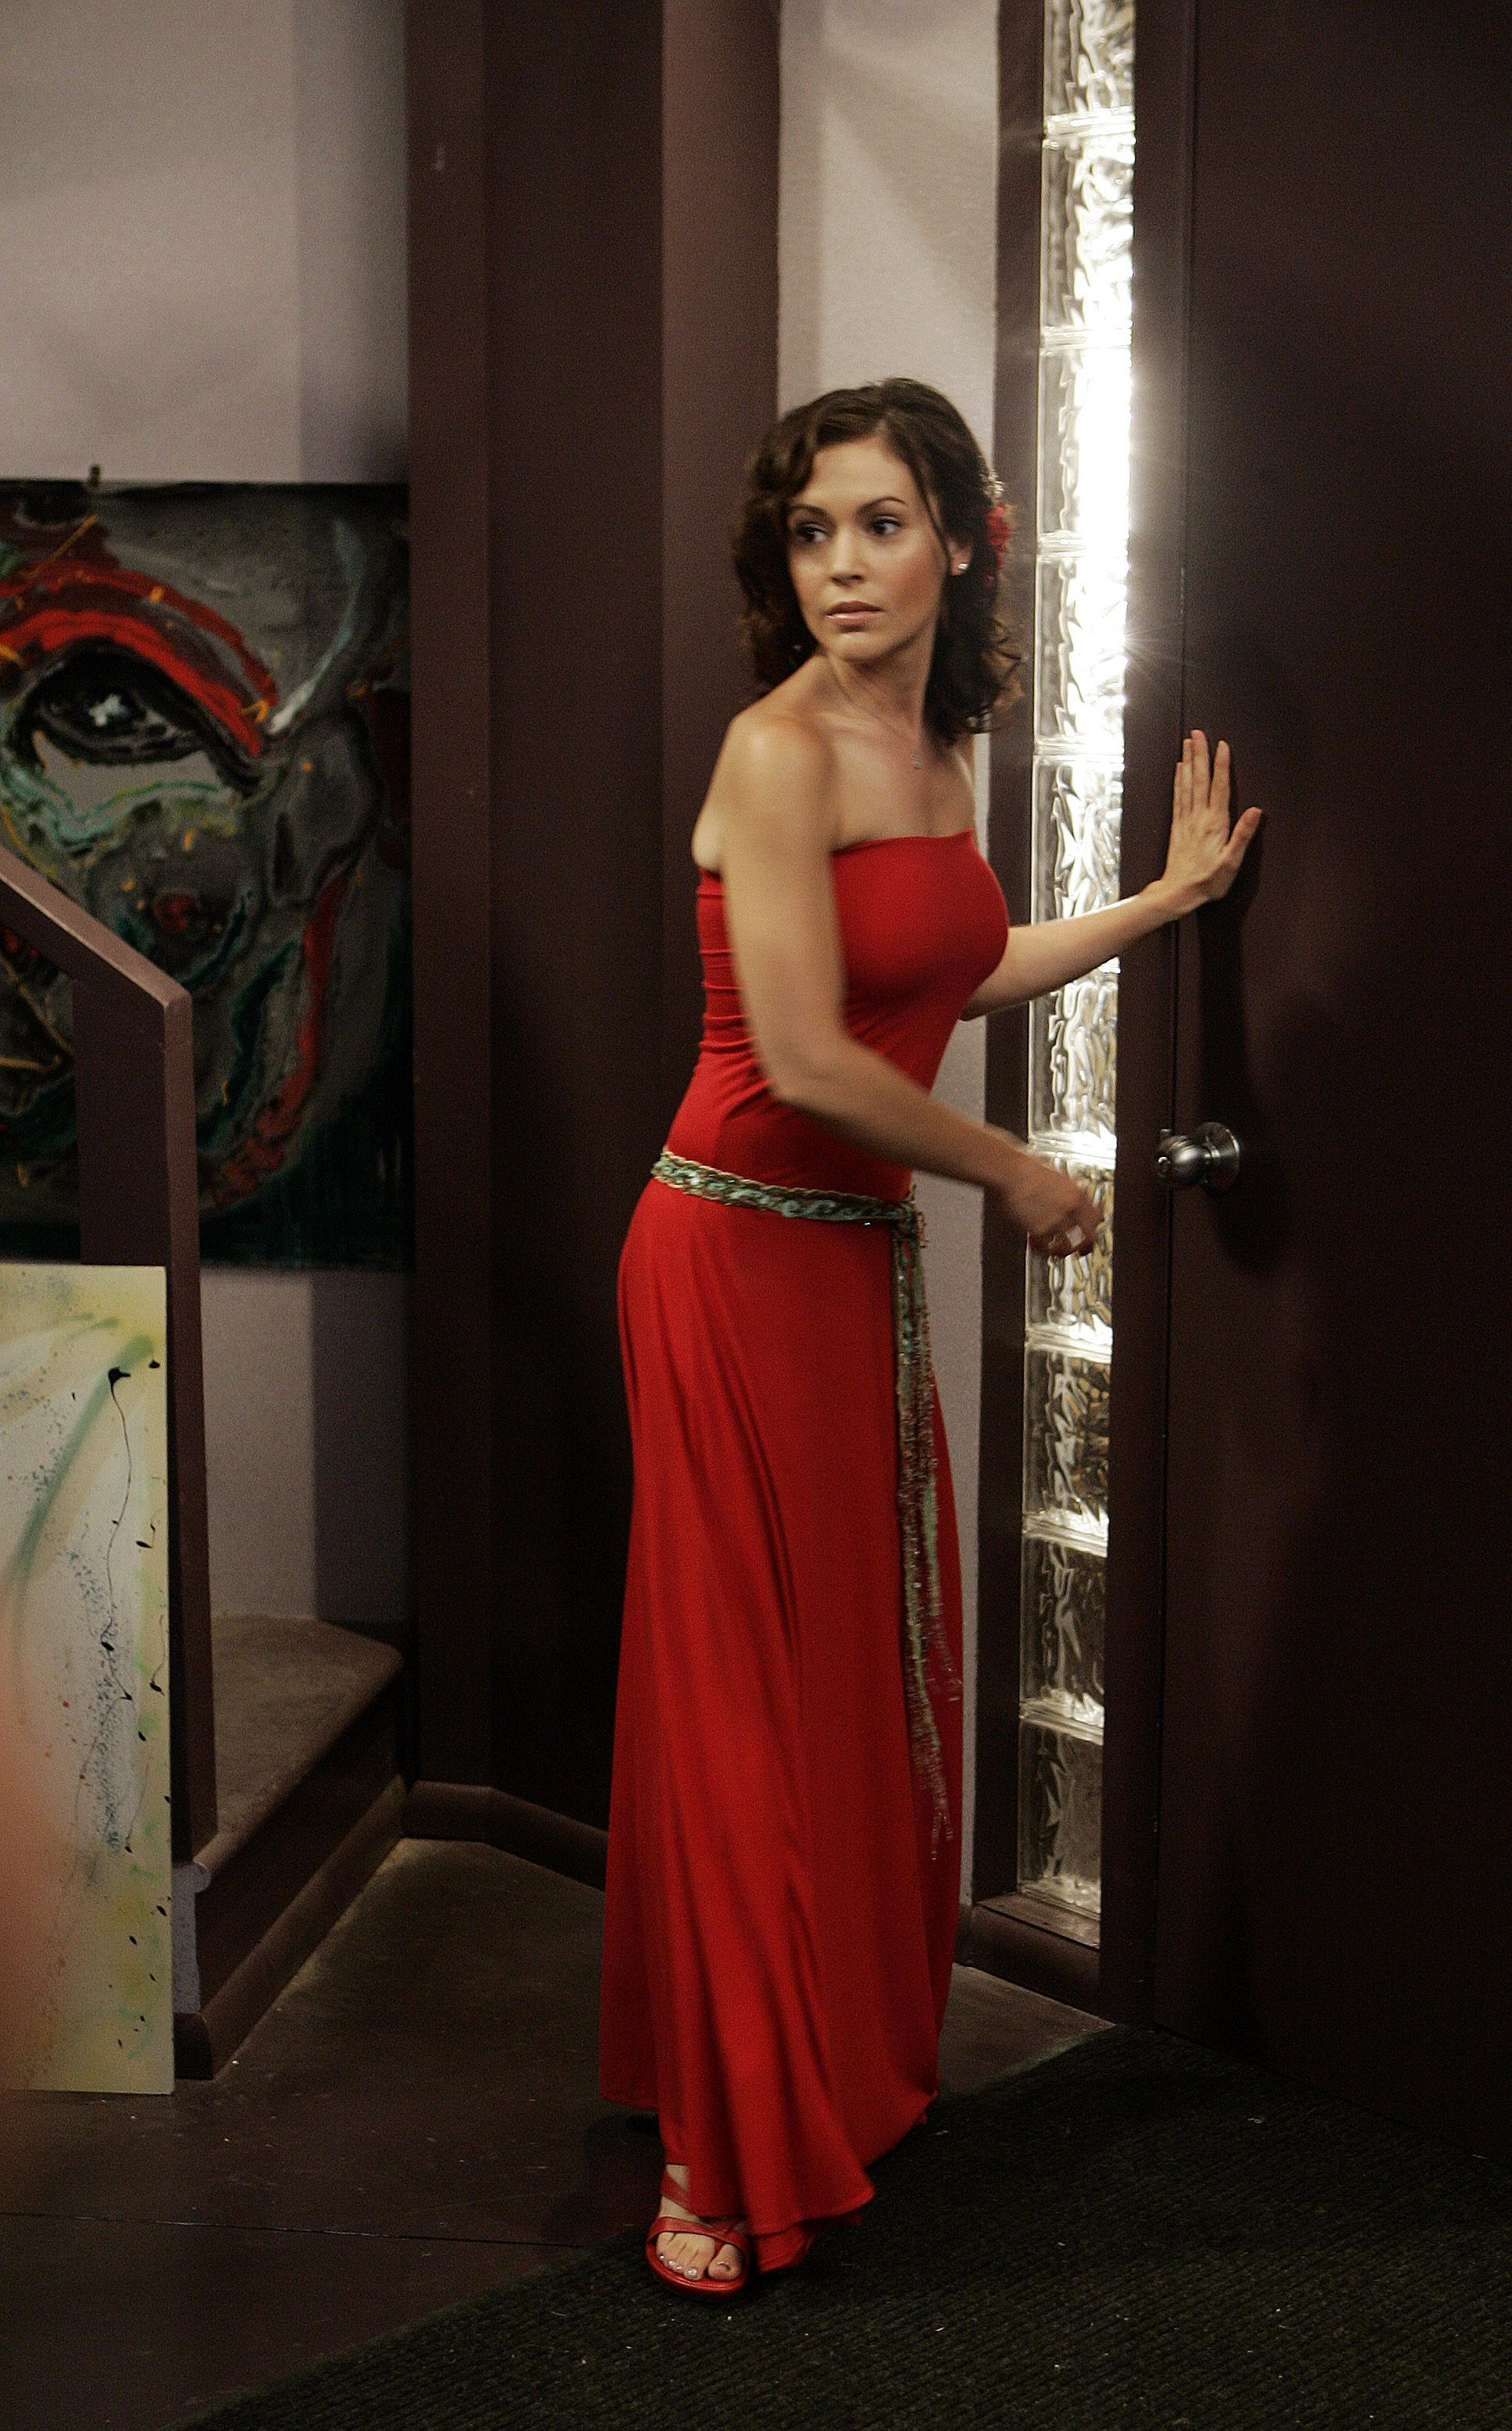 Charmed Love This Dress With Images Alyssa Milano Phoebe